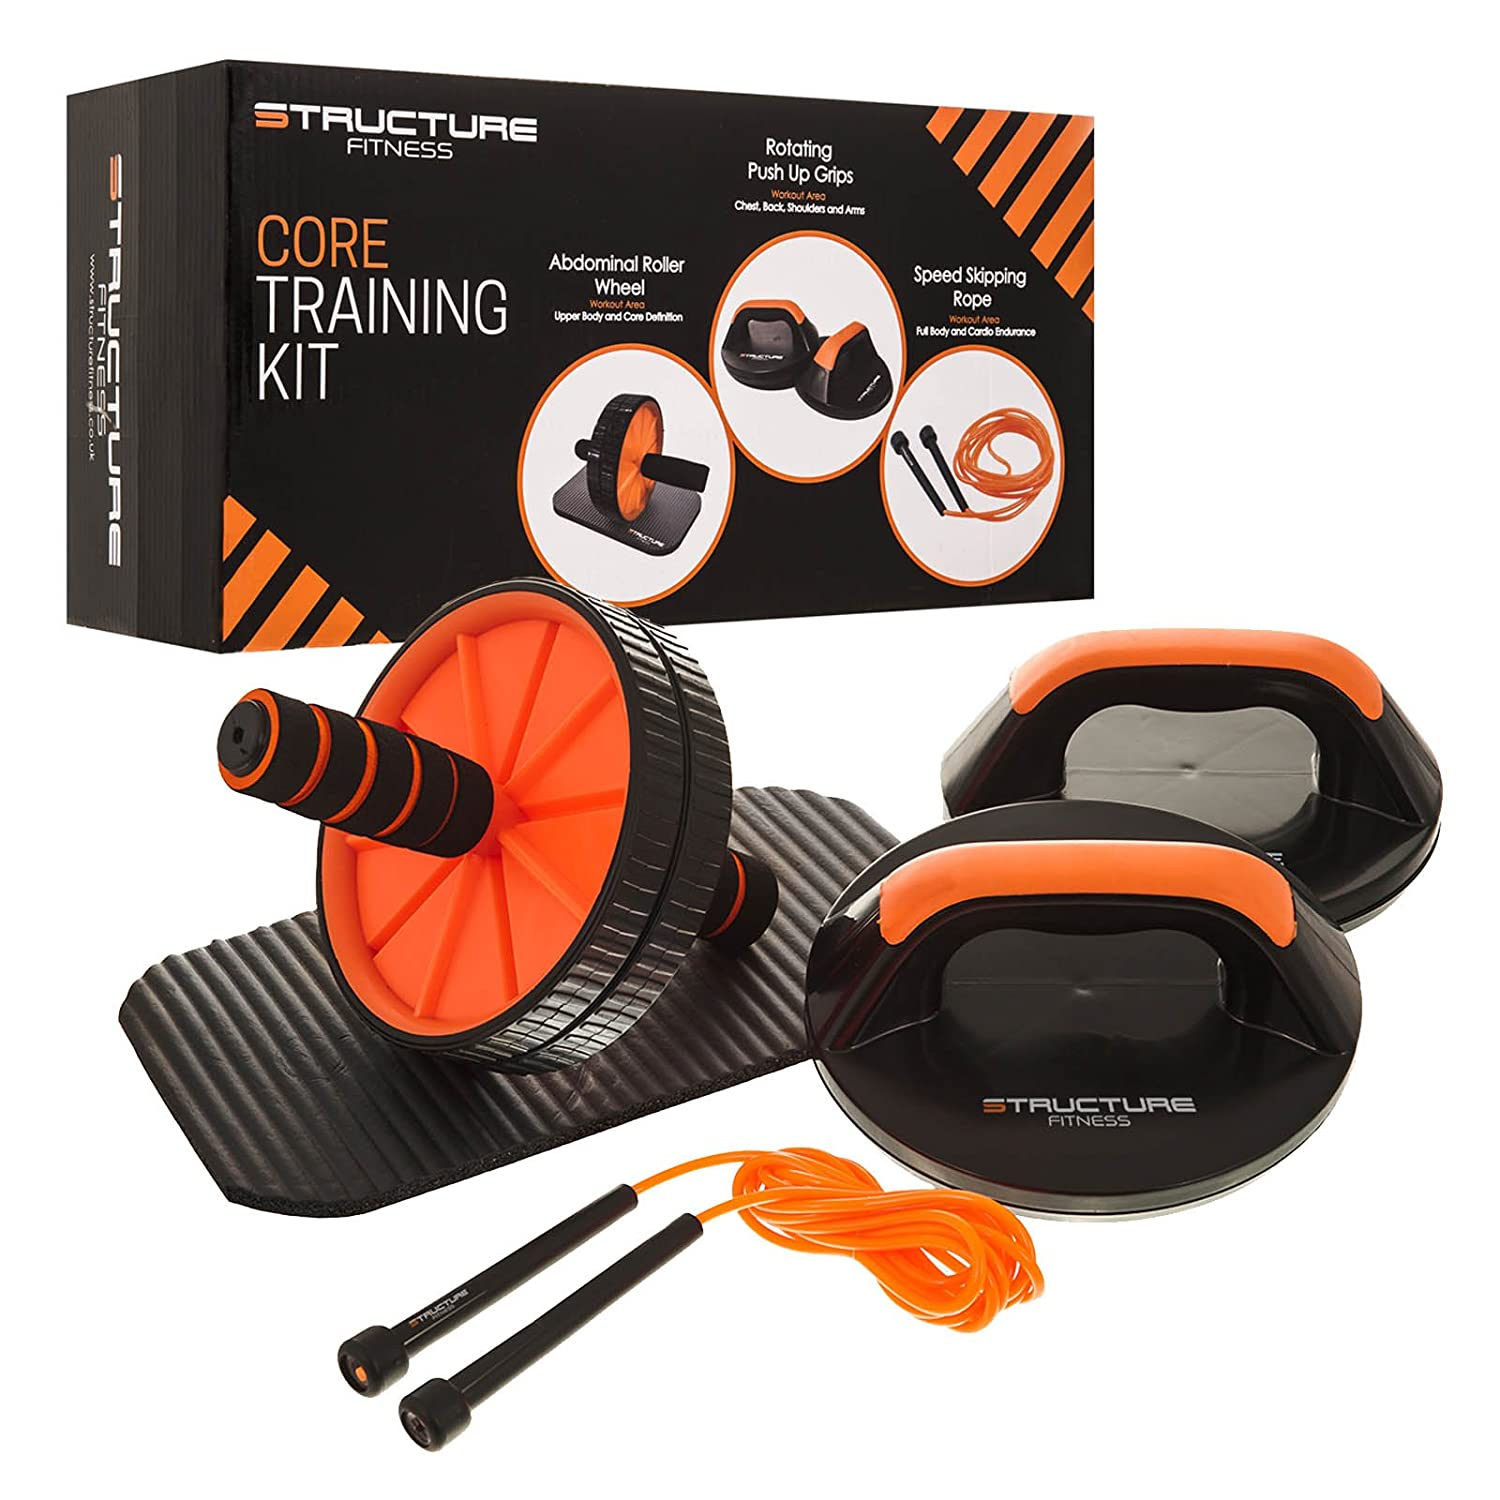 Sf Core Training Kit Home Fitness Gym Set Push Up Grips Abdominal Body Sculpture Skip Rope Ab Roller Cushioned Padded Knee Pad 3m Speed Skipping Sports